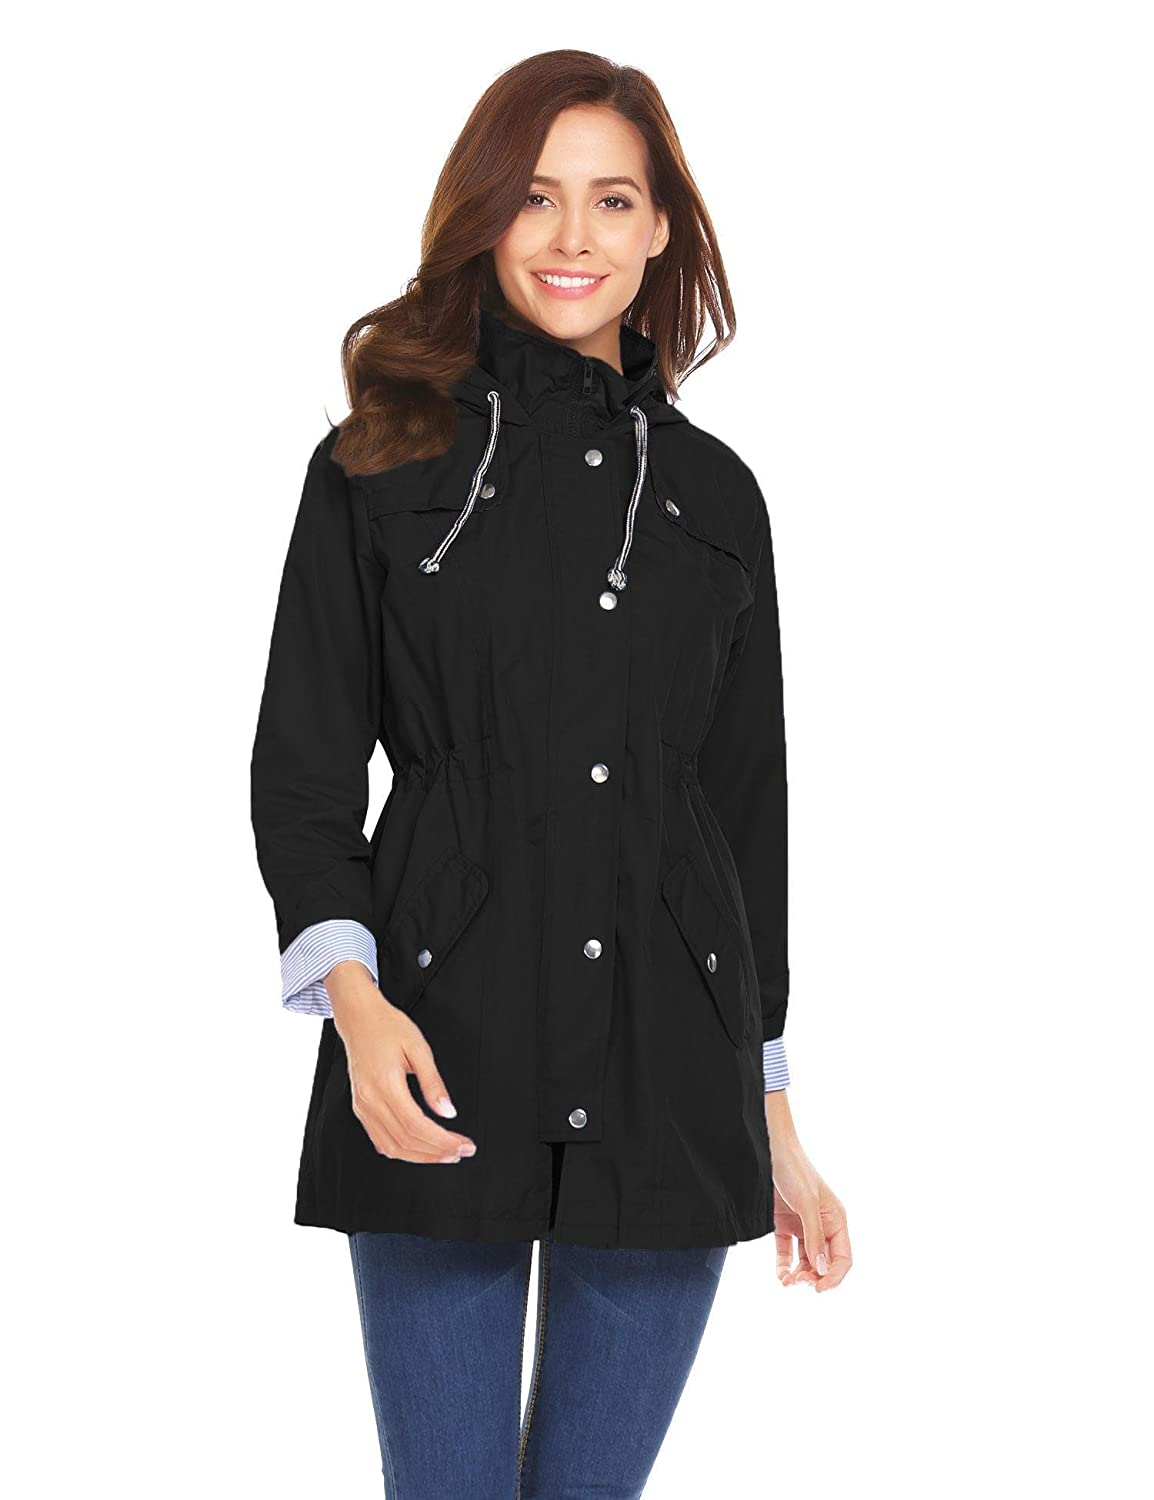 Meaneor Womens Lightweight Waterproof Rain Jacket Active Outdoor Hooded Raincoat with Pockets